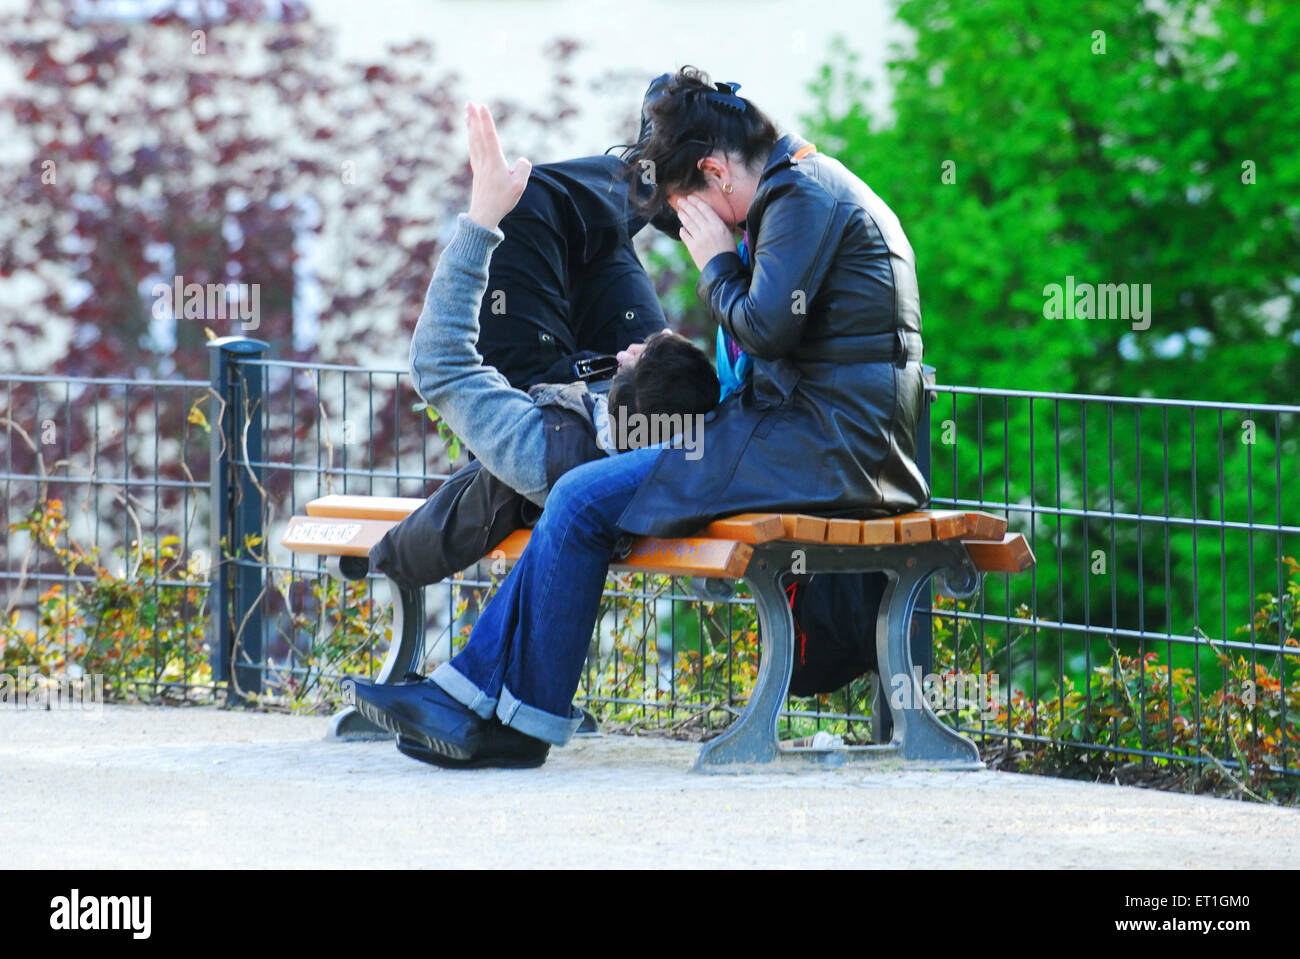 Moment togetherness of couples ; Germany - Stock Image